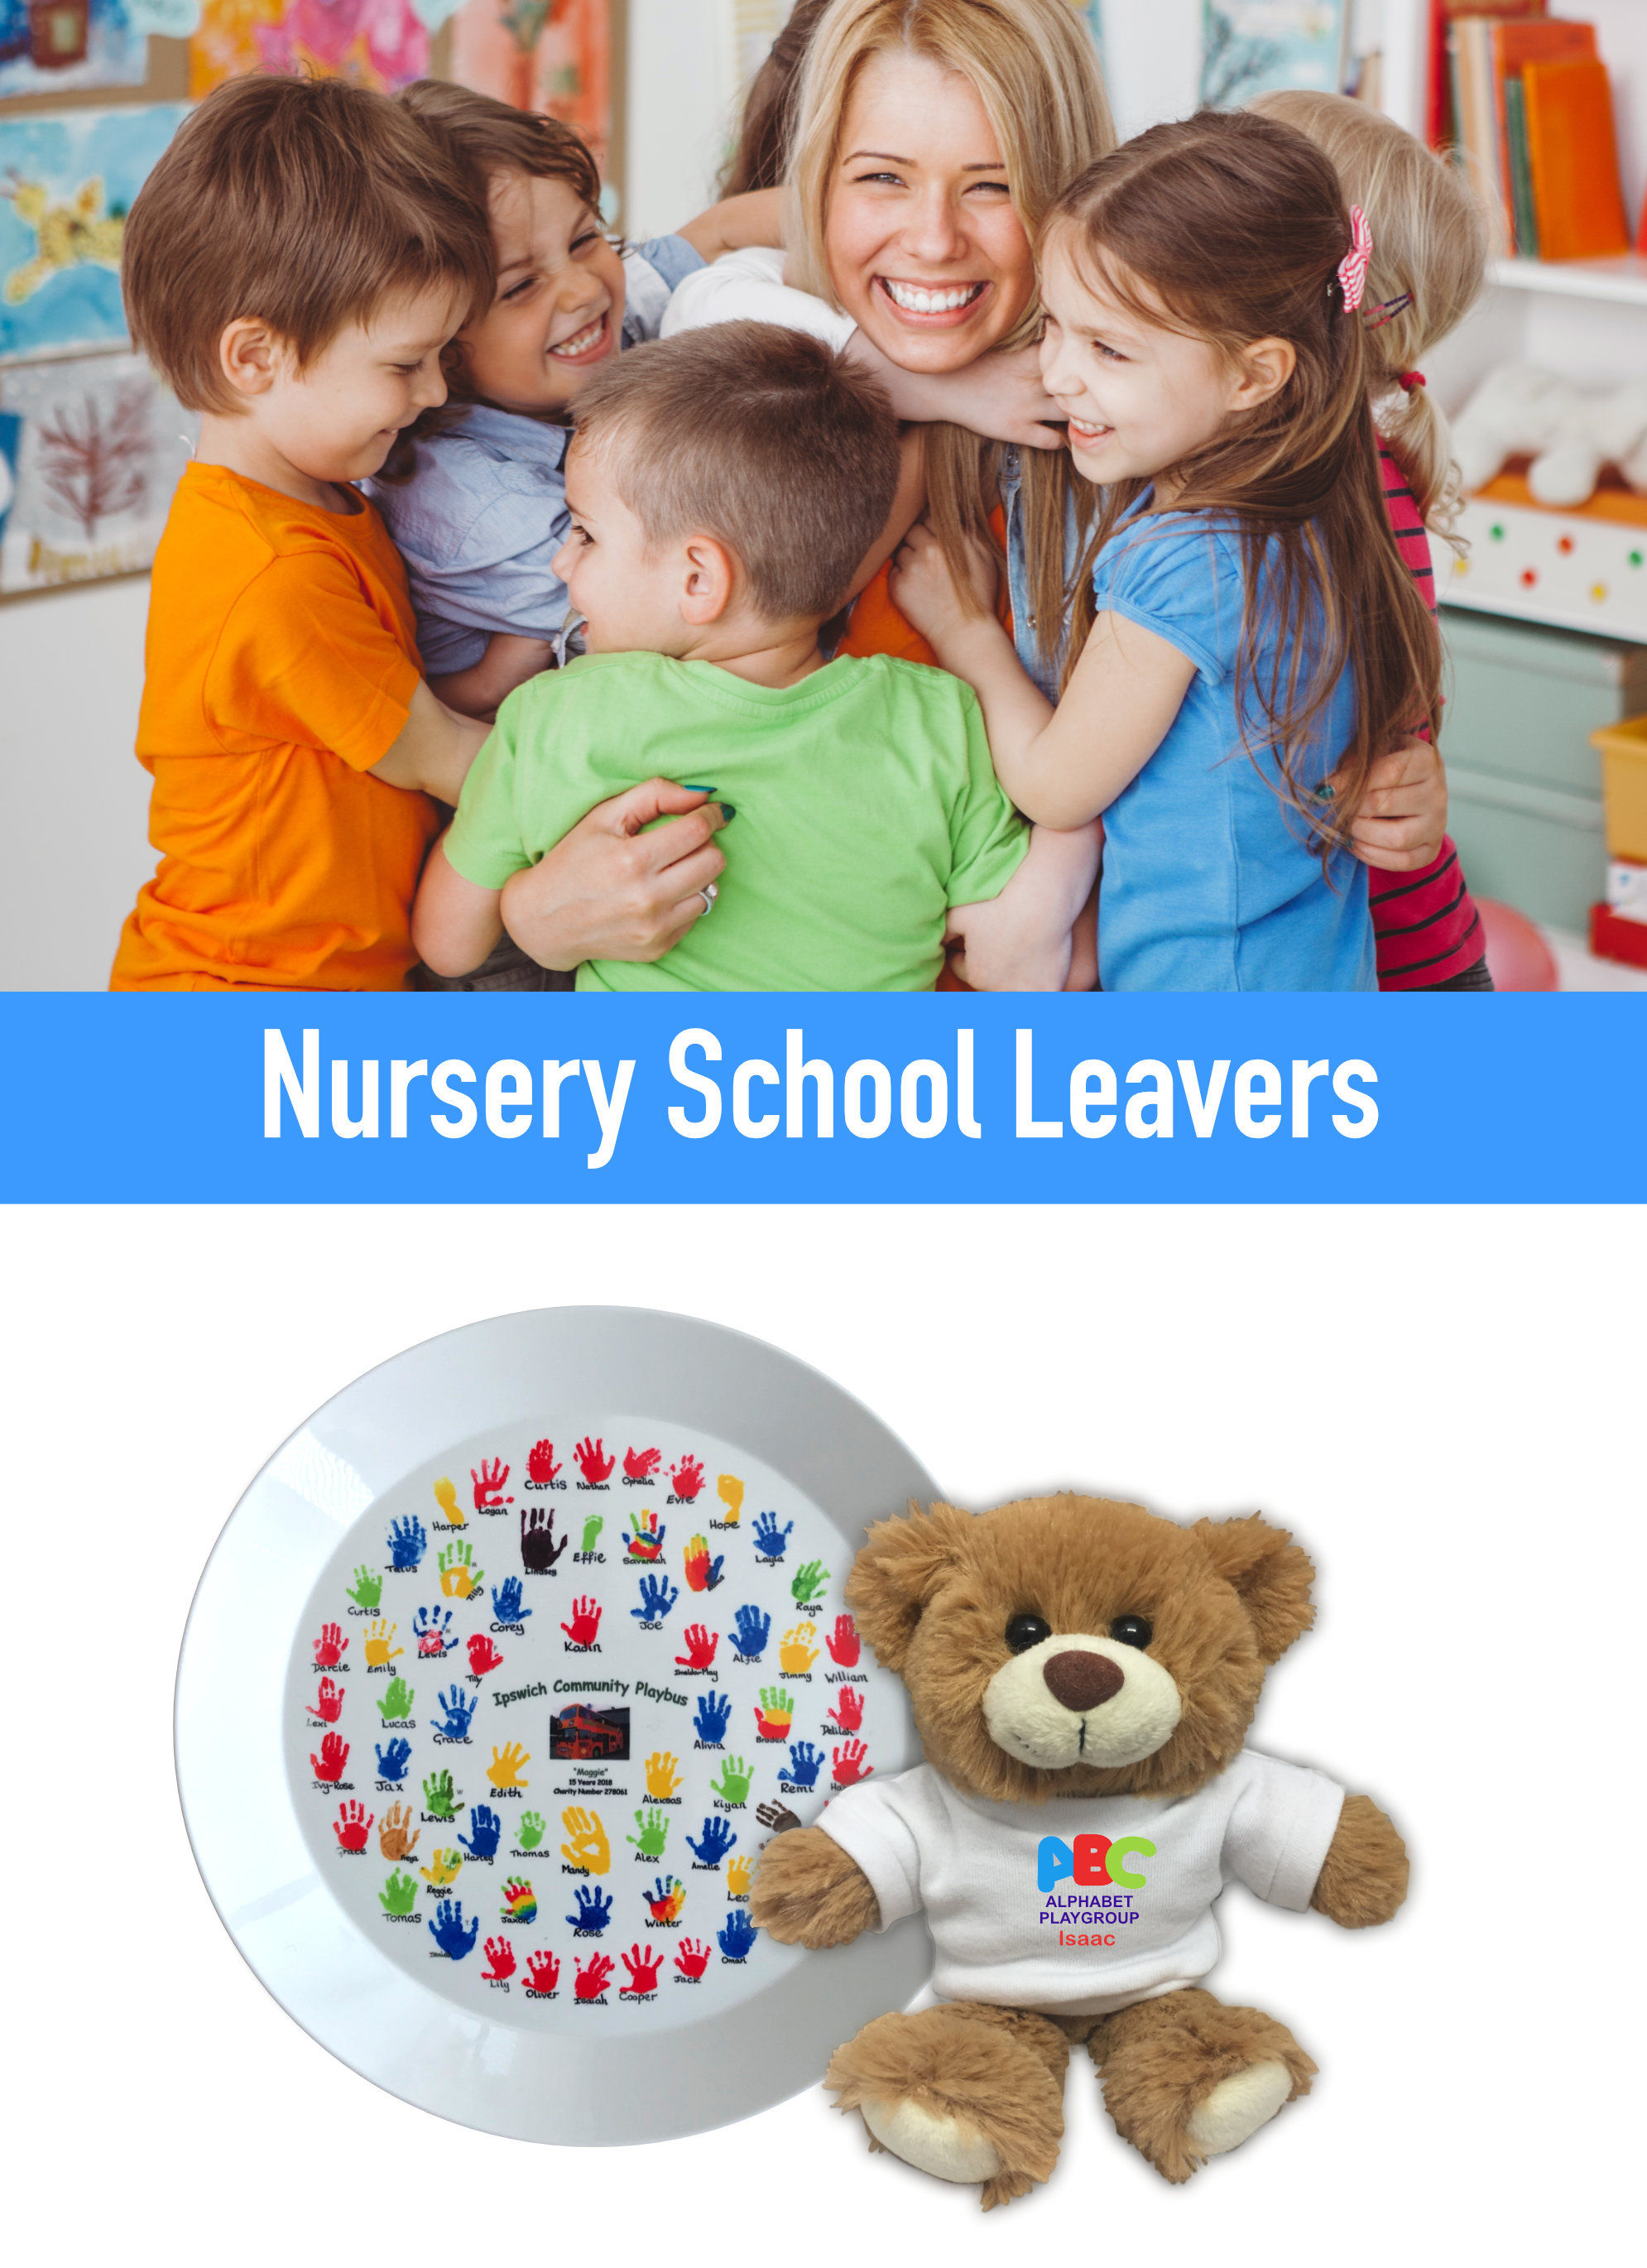 nursery-school-leavers-gifts@2x.jpg